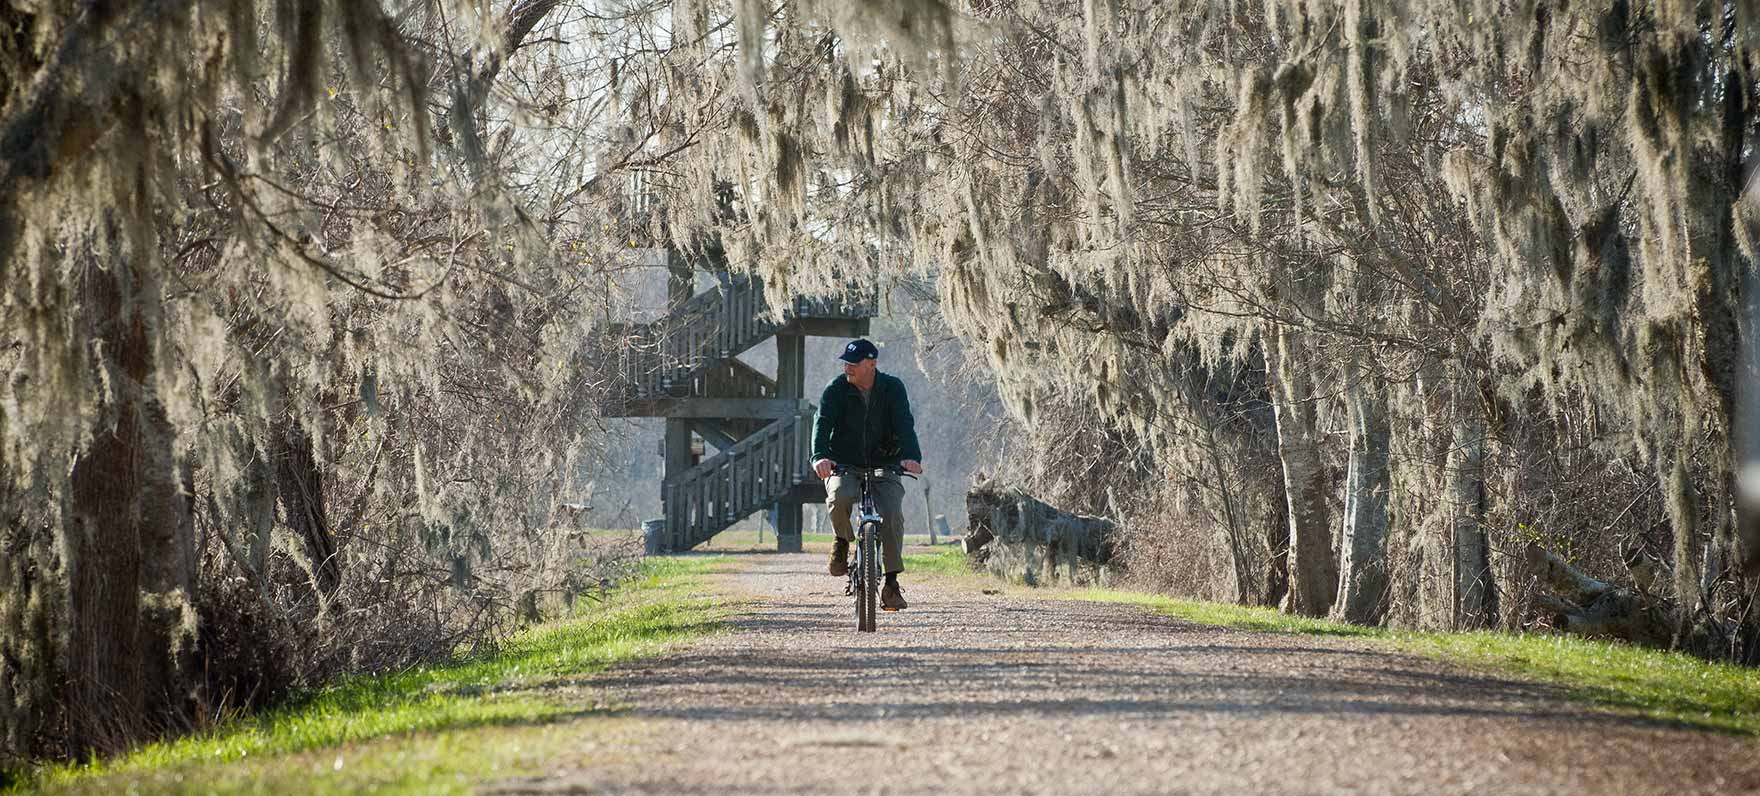 Biking in Brazos Bend State Park